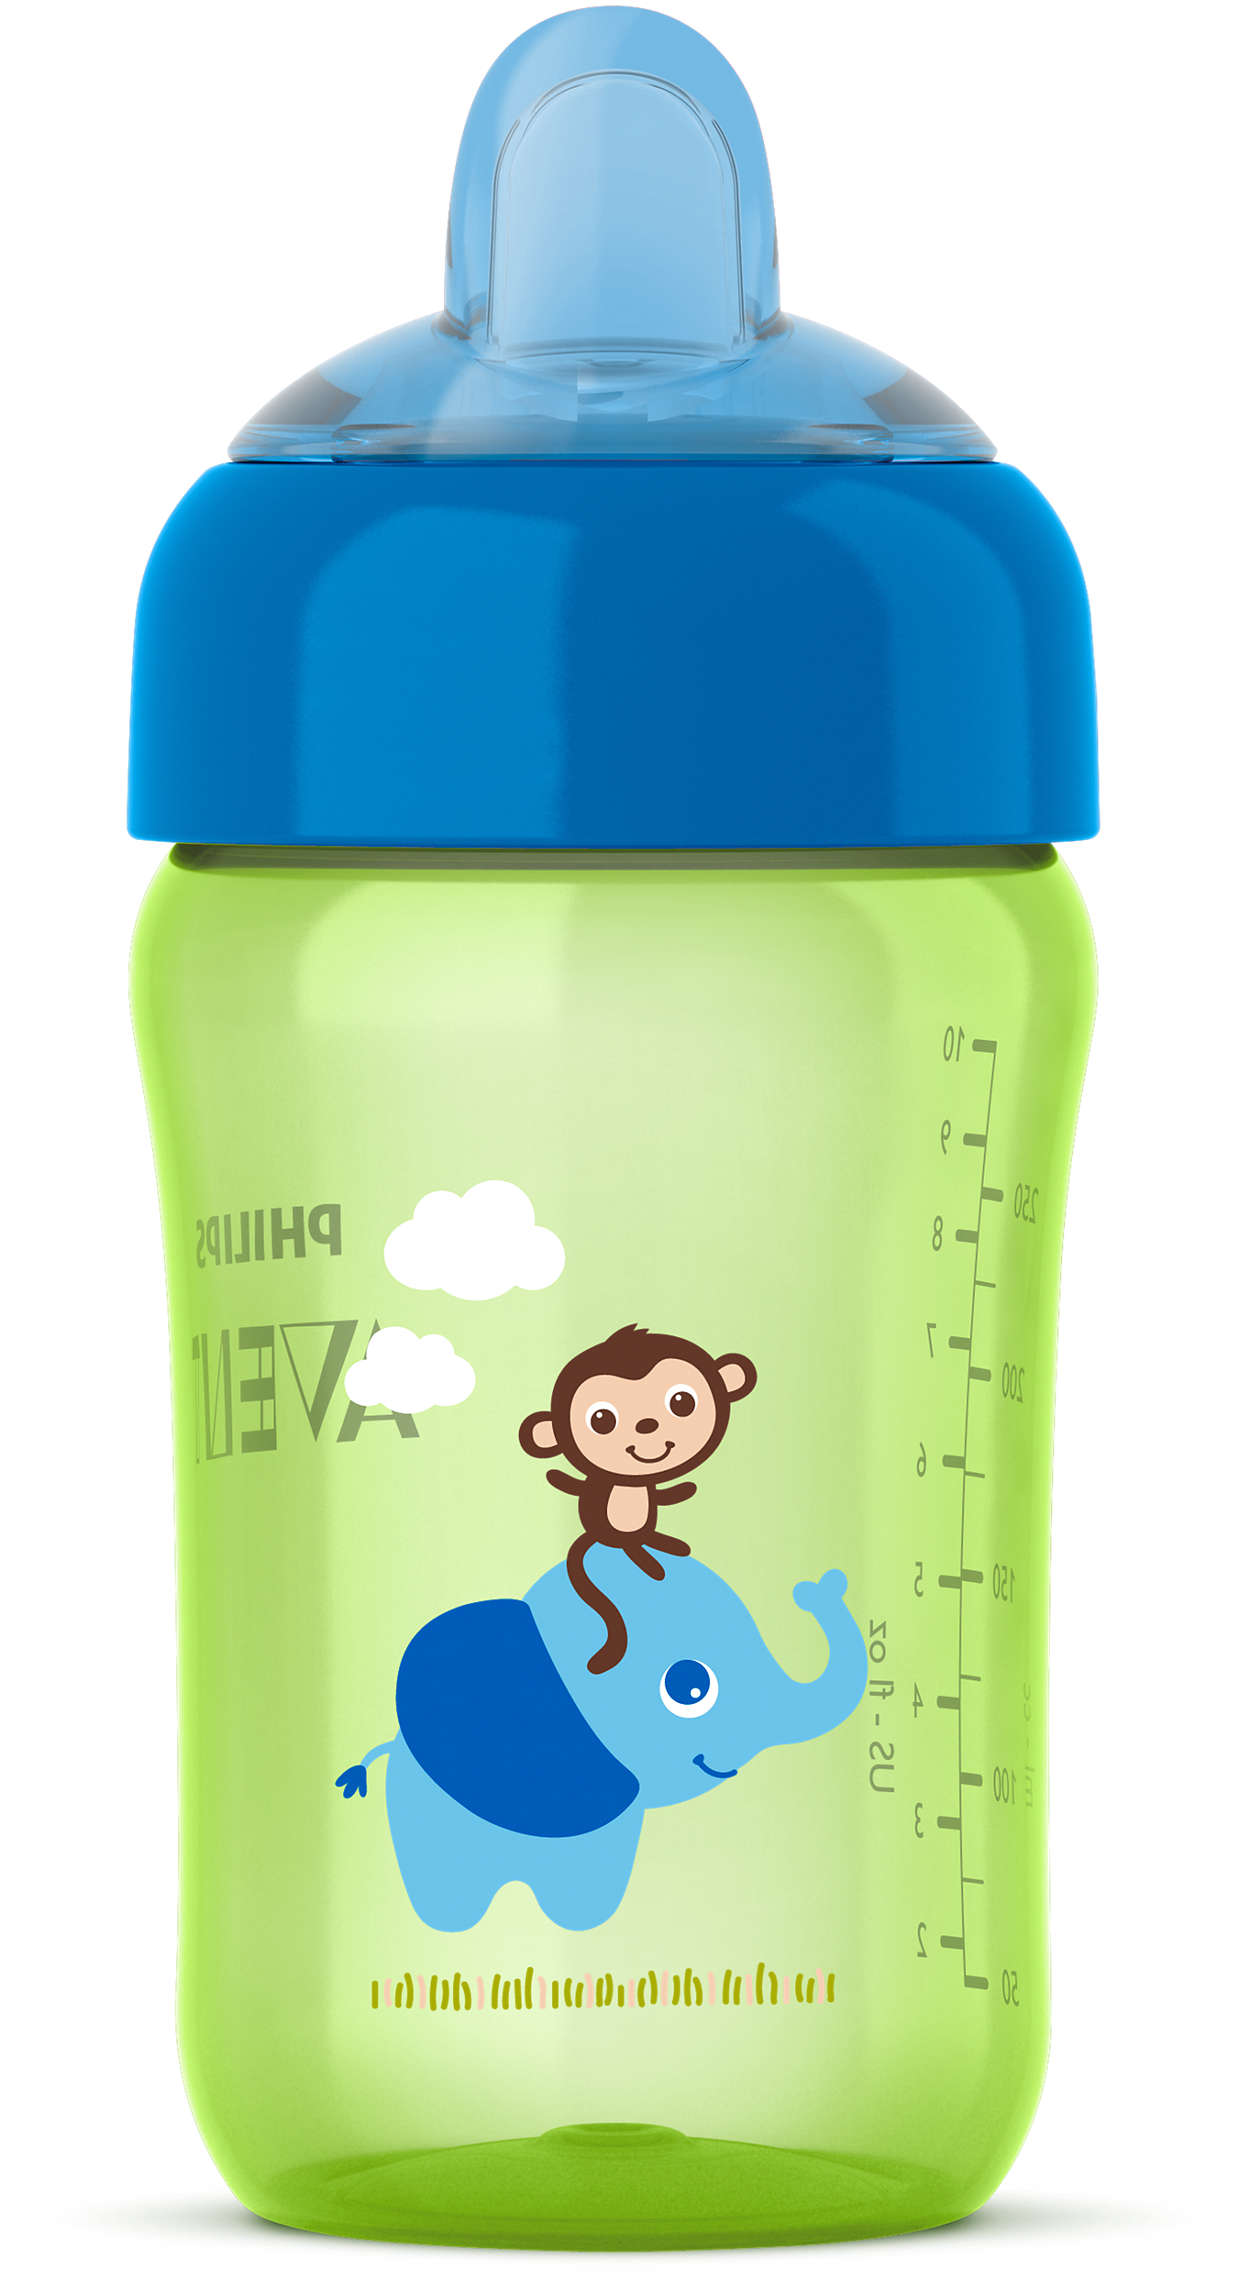 Snap-top lid keeps spout clean on the go